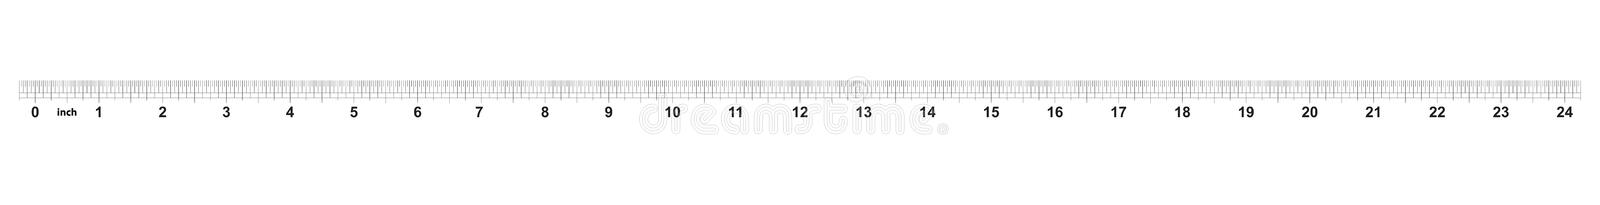 24 inch ruler. The price of division - 32 divisions by inch. Exact length measurement device. Calibration grid.  stock illustration